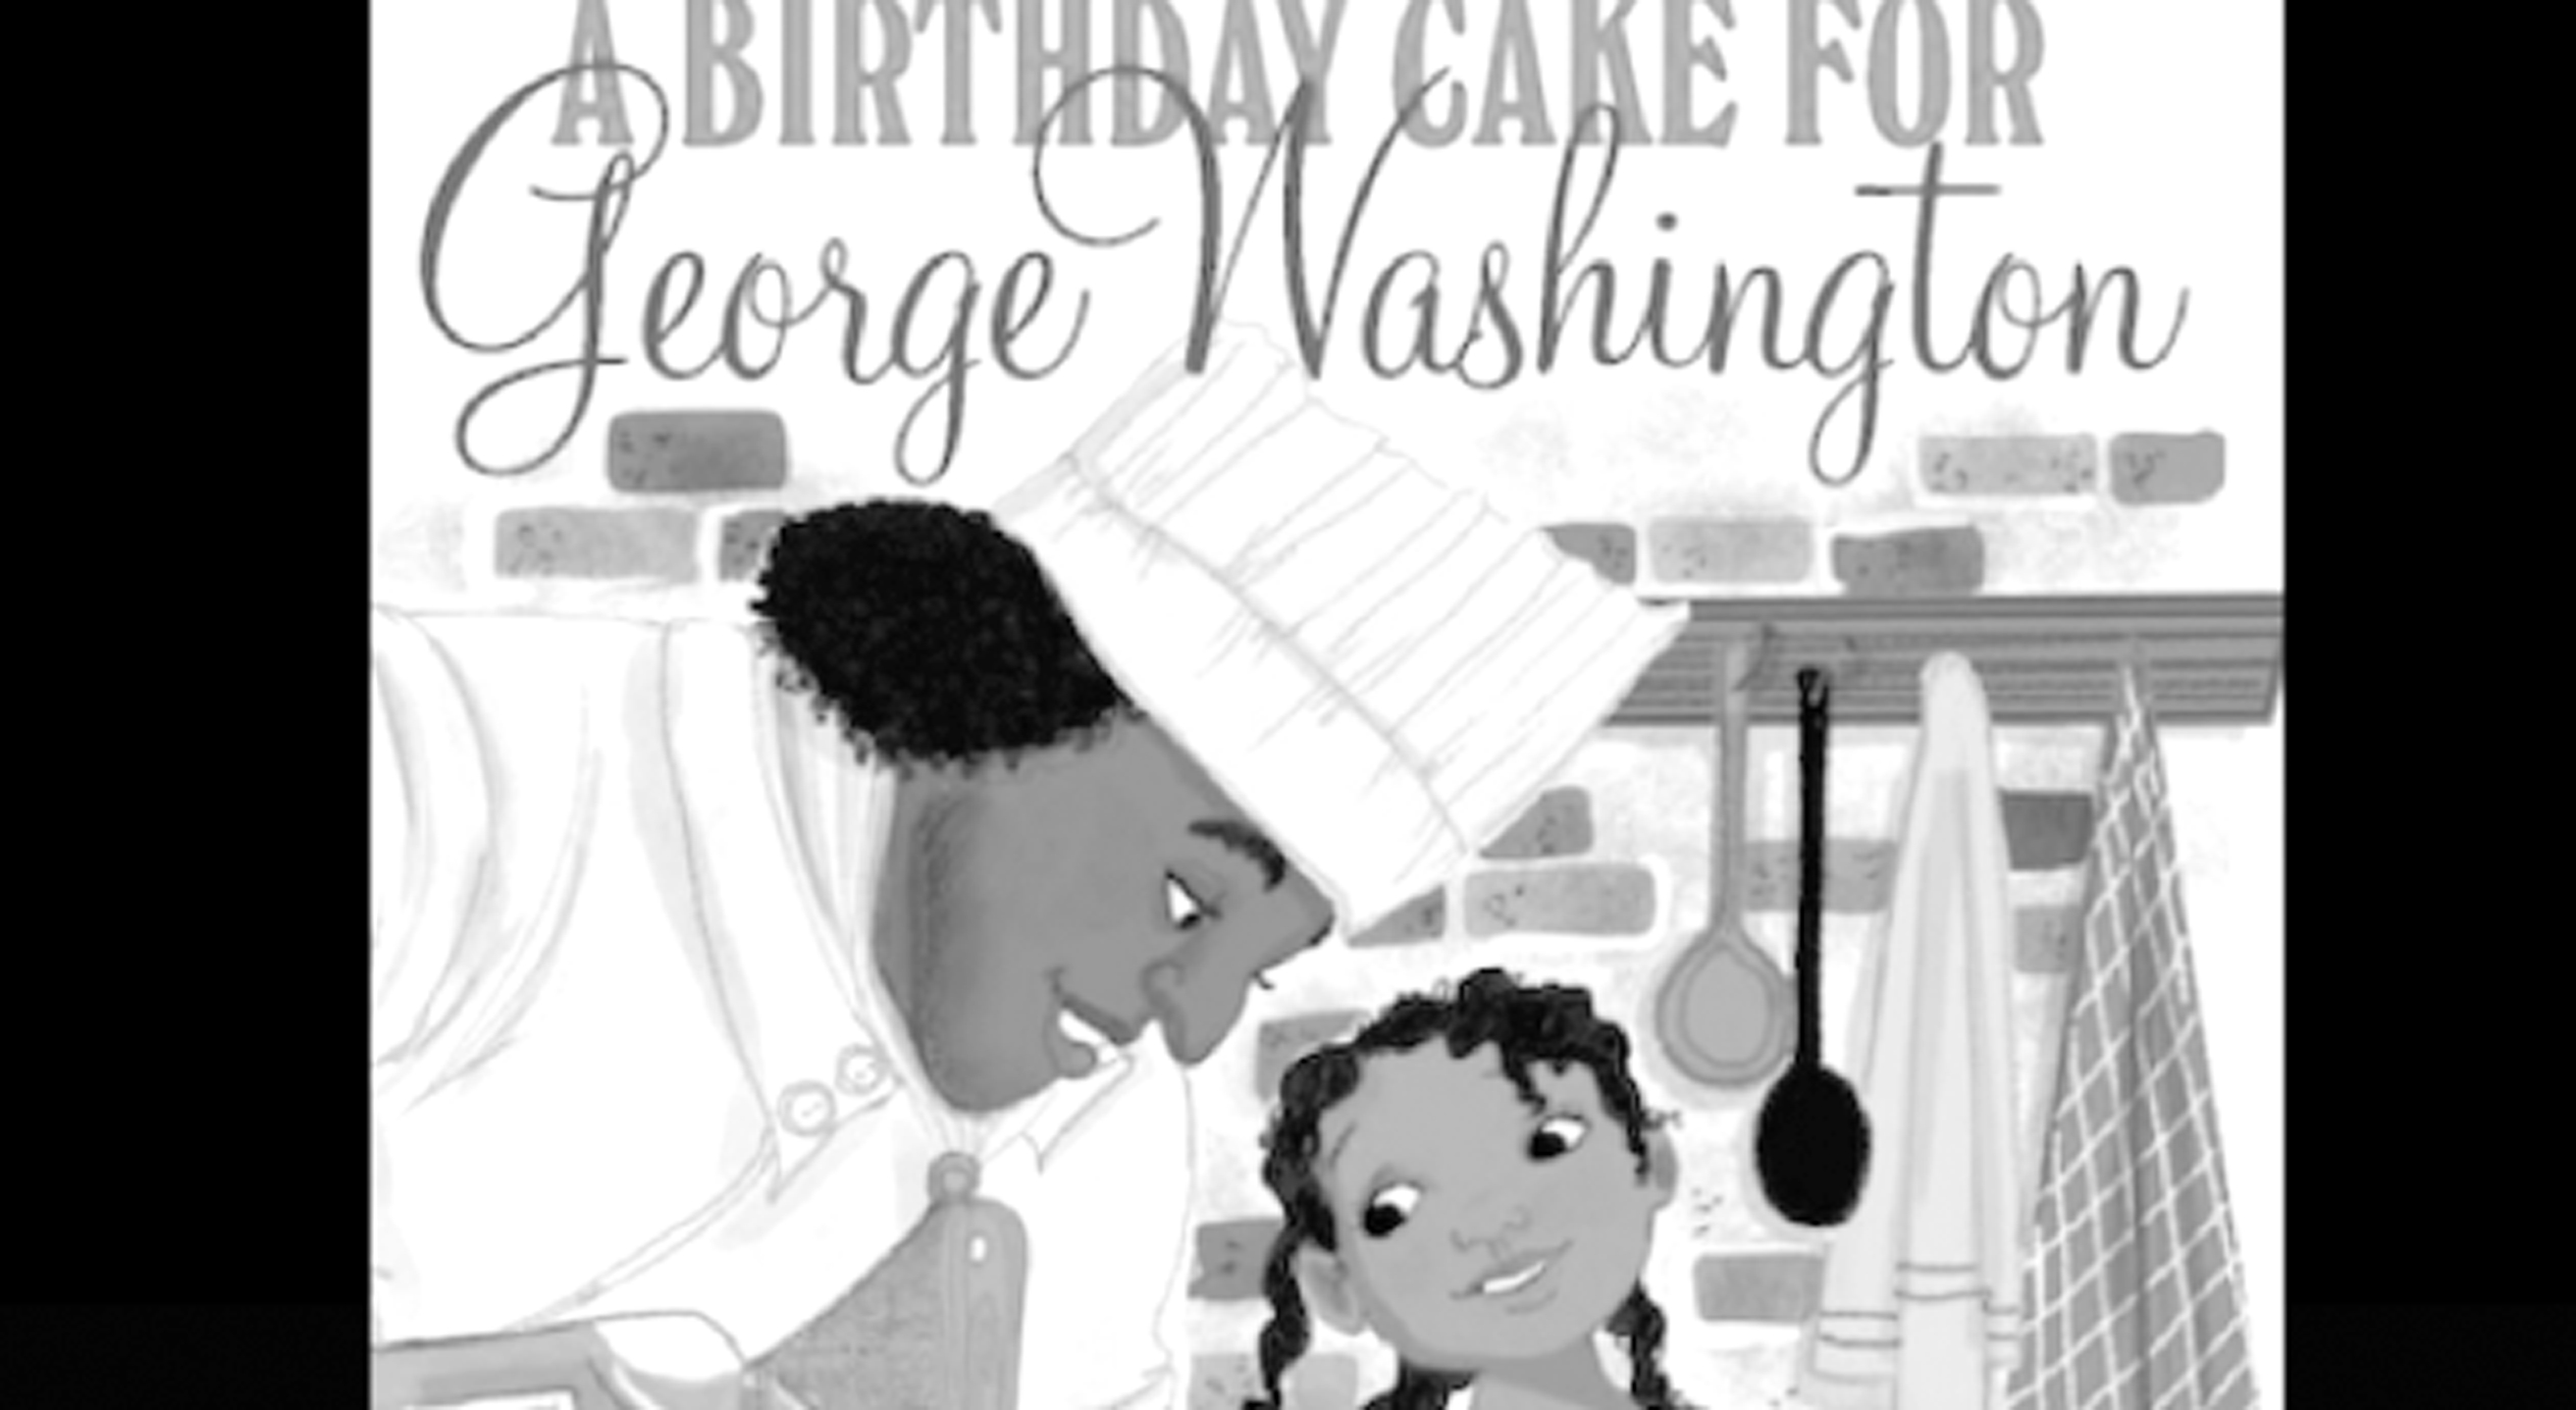 a-birthday-cake--george-was